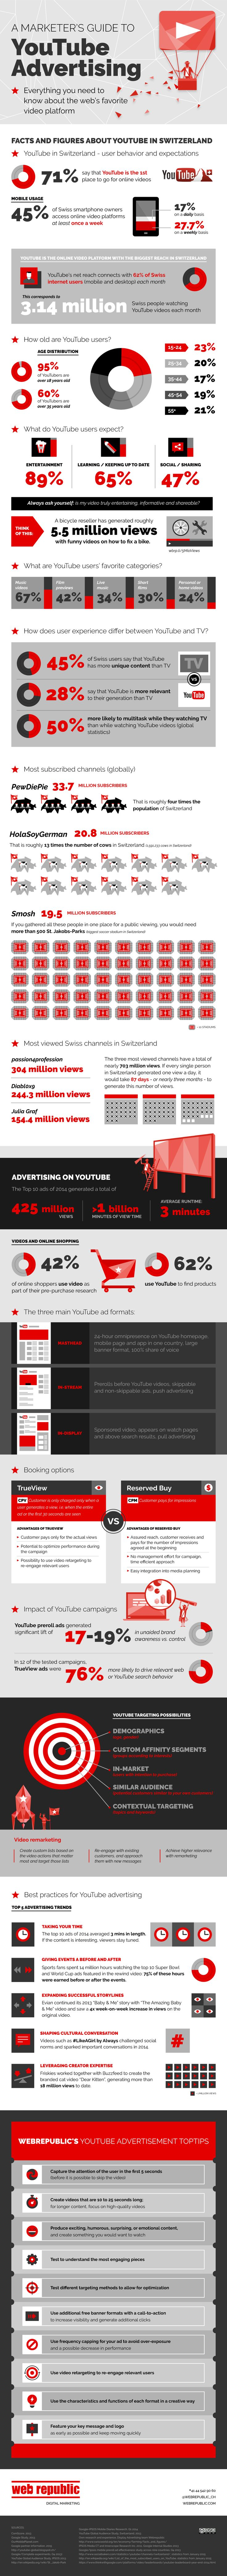 Key Facts about Advertising on Youtube - #infographic